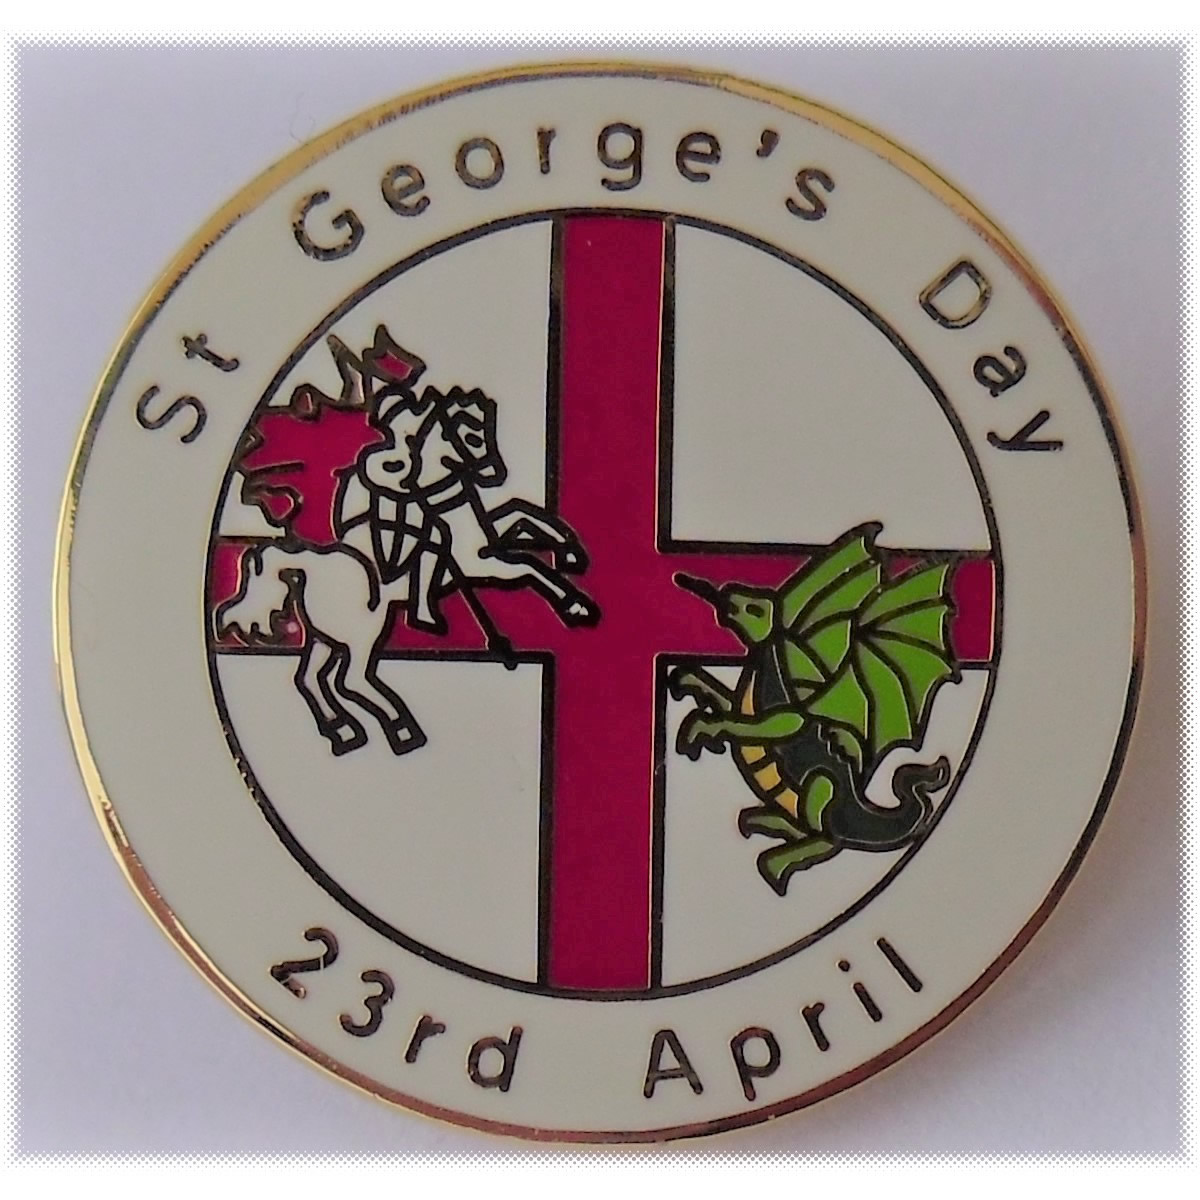 Saint George's day pin badge - Click Image to Close